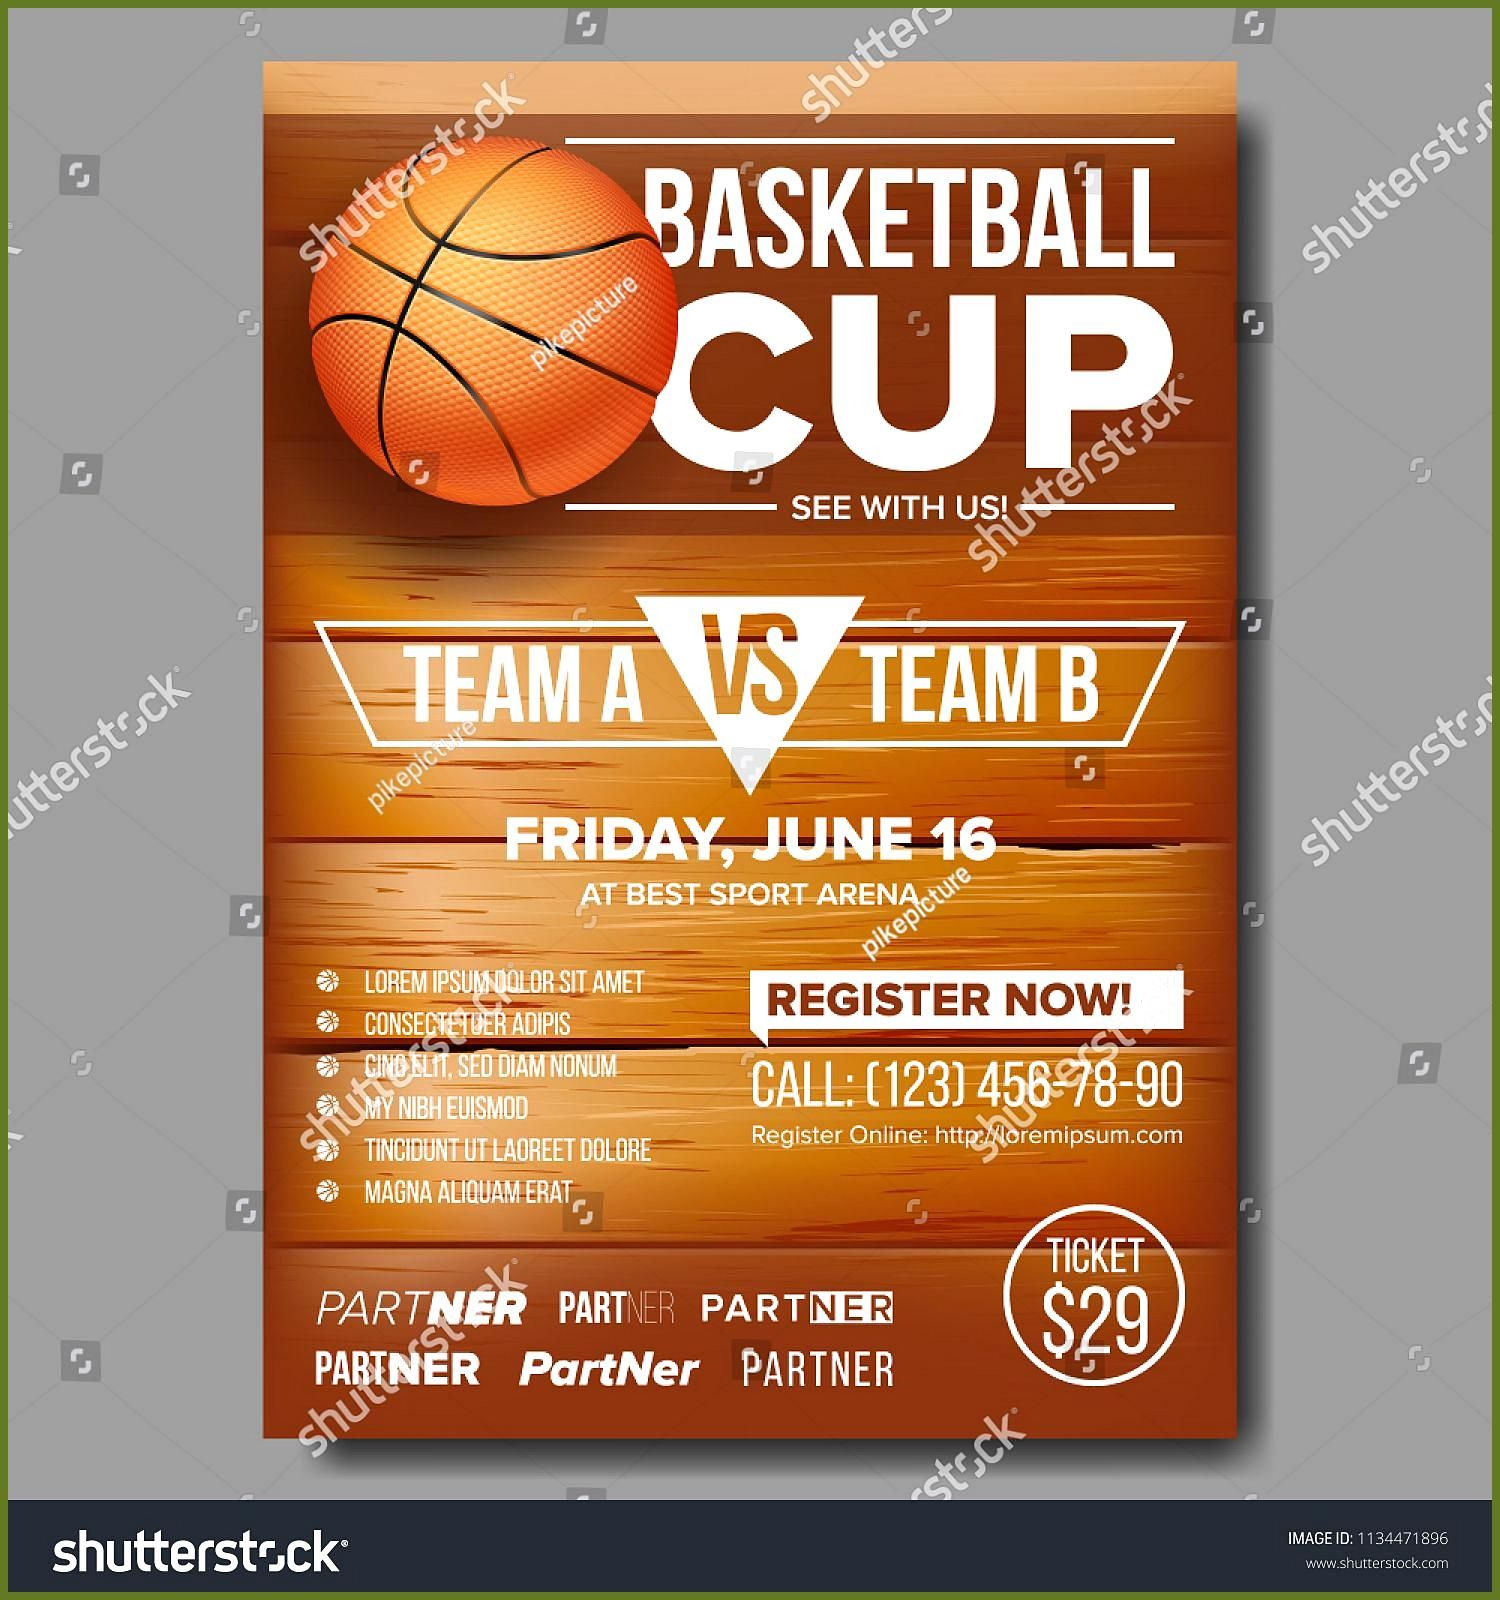 Basketball Poster Vector Design Sport Bar Stock Vector Royalty Free 1134471896 Basketball Poster Vector Design For Sport Bar Promoti Basketball Posters Basketball Sports